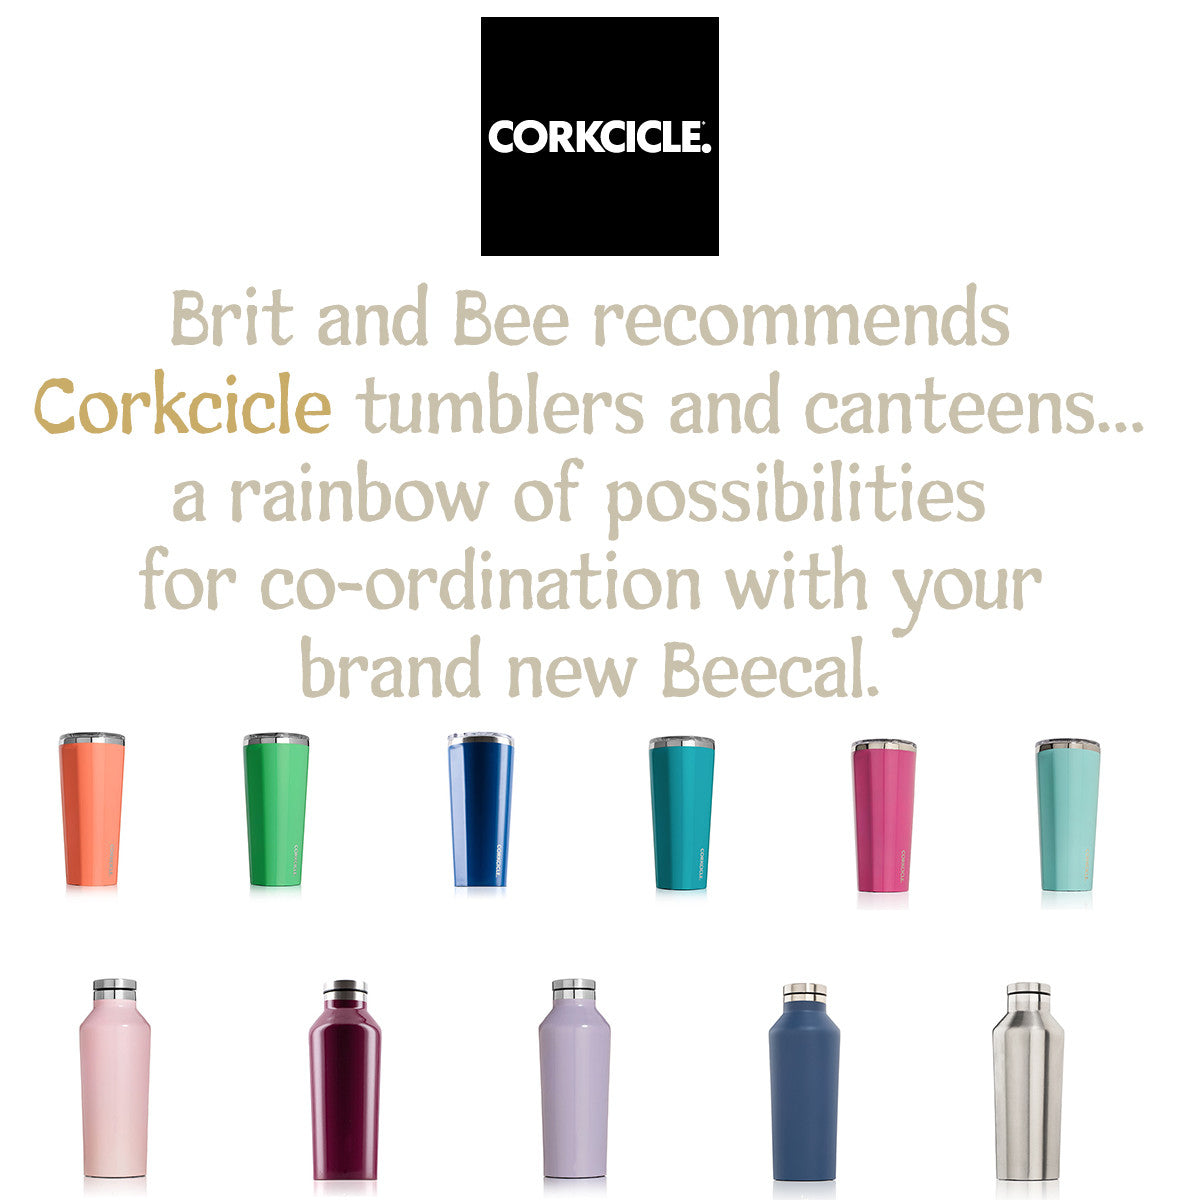 Brit and Bee recommends Corkcicle tumblers and canteens